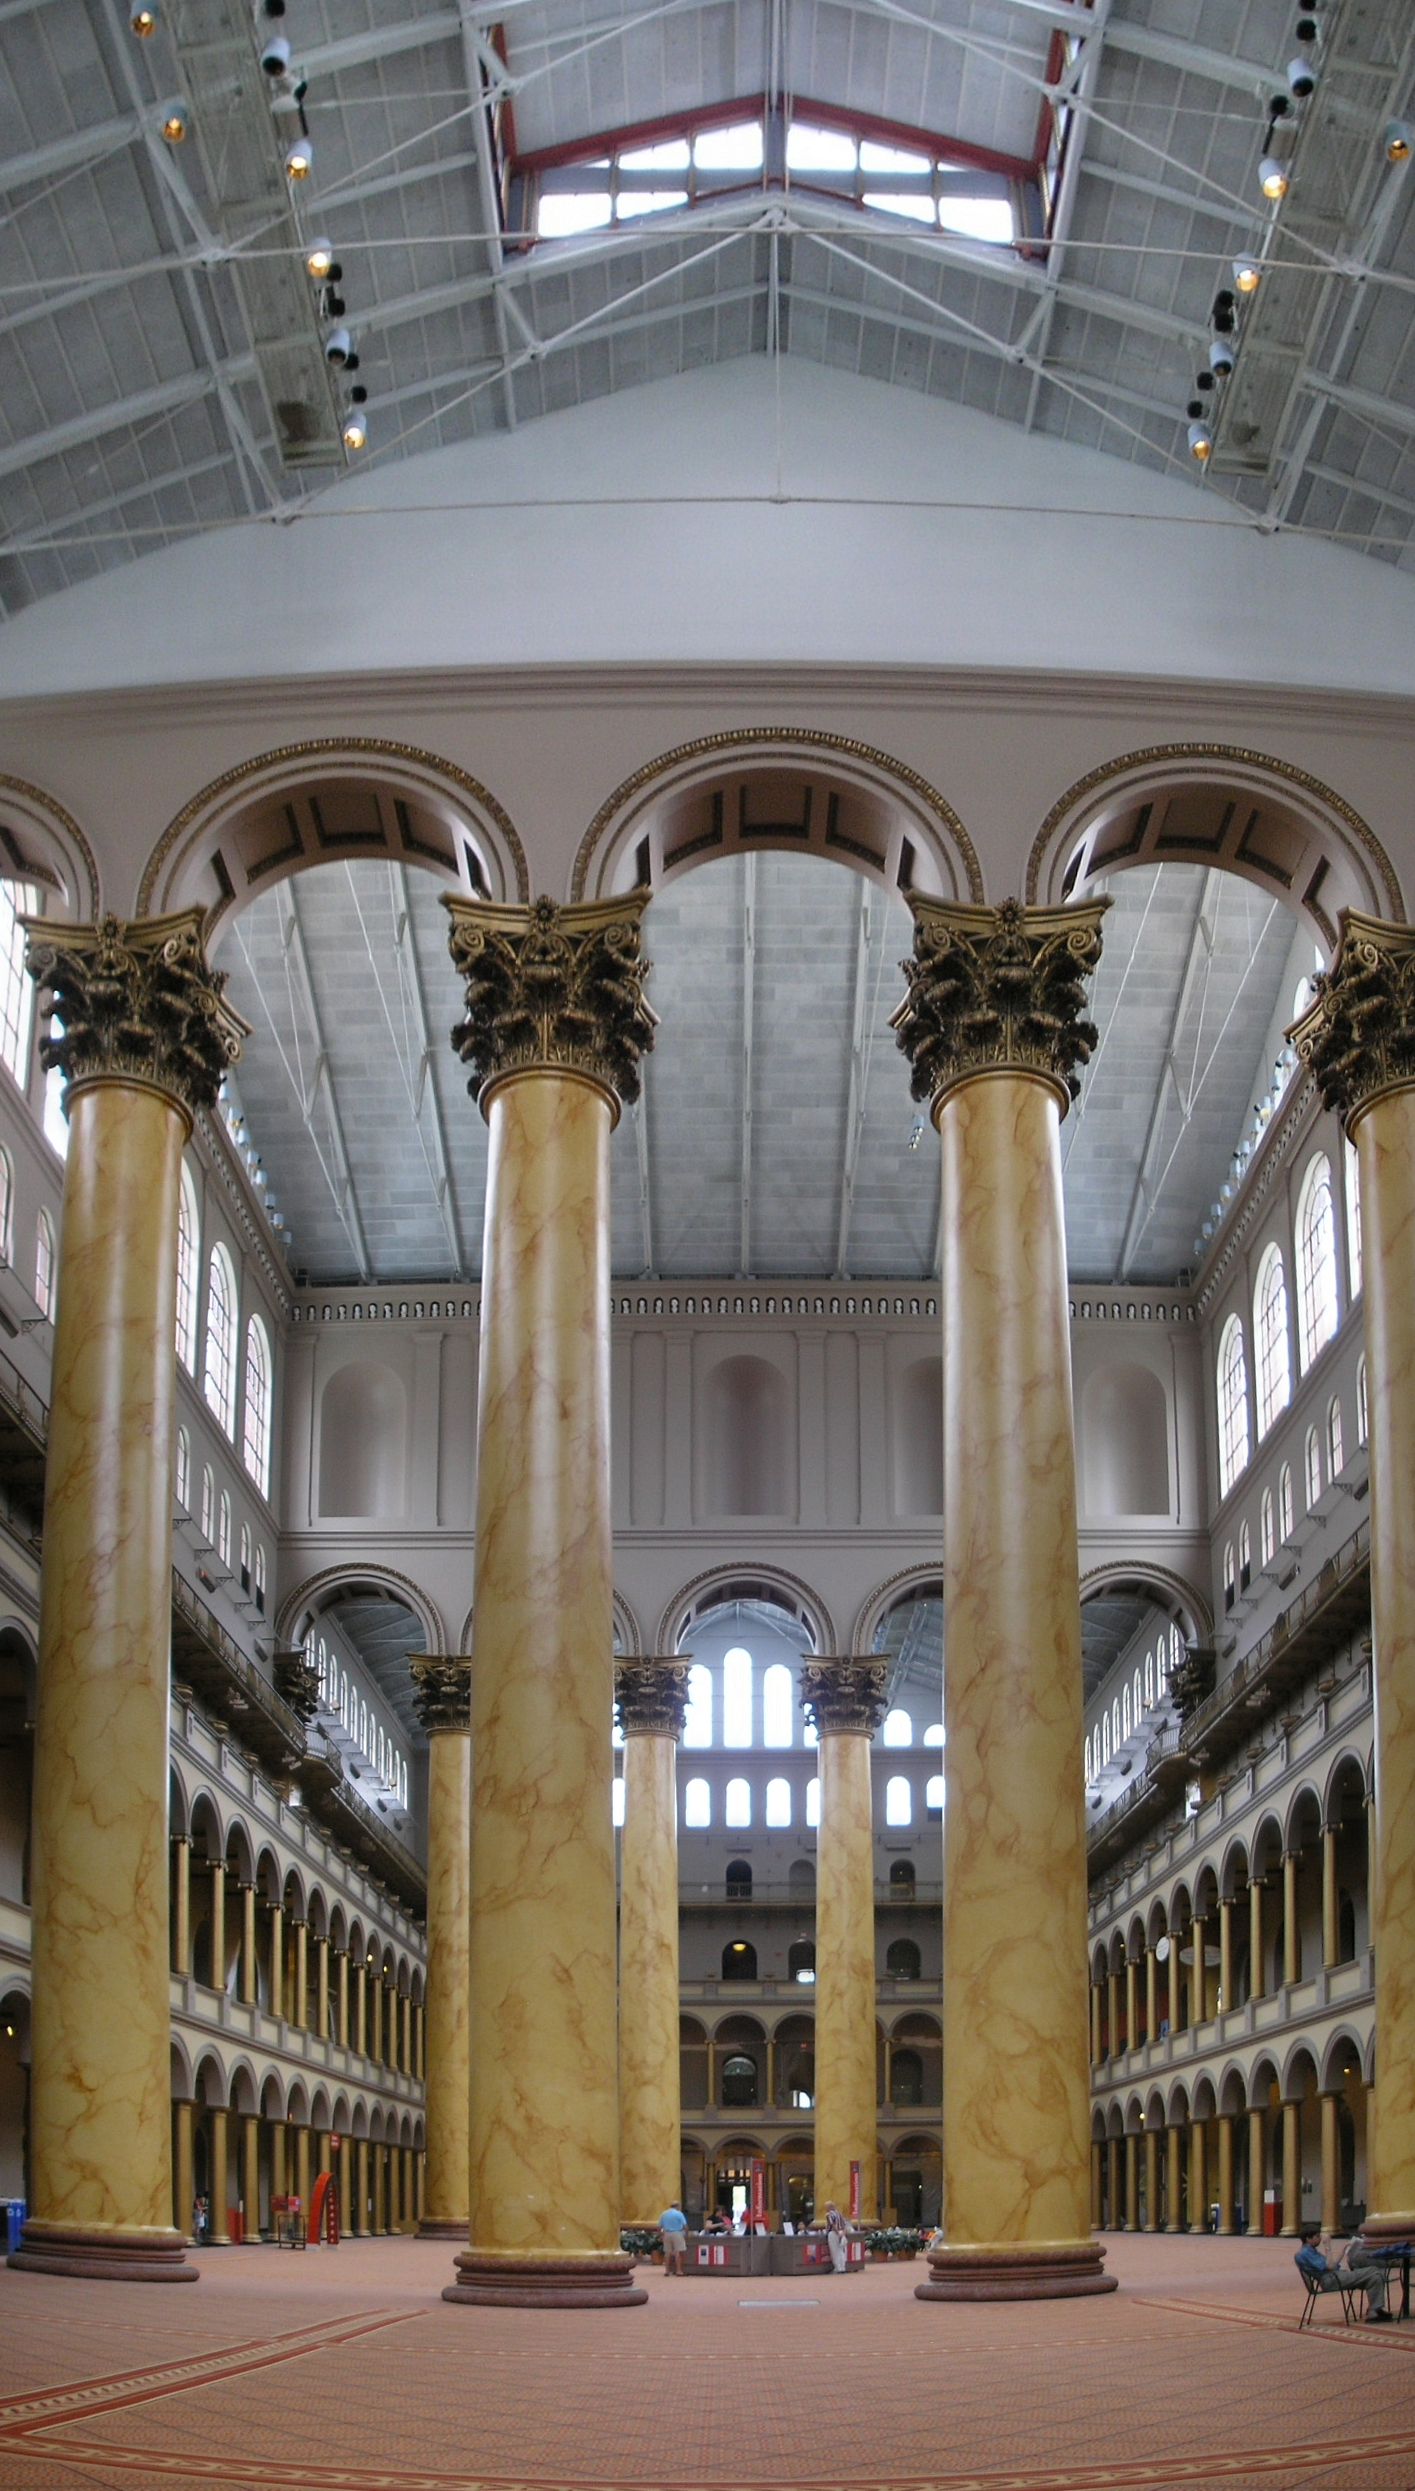 camping folding chair ikea covers australia 50 breathtaking photos of national building museum in washington d.c. : places boomsbeat